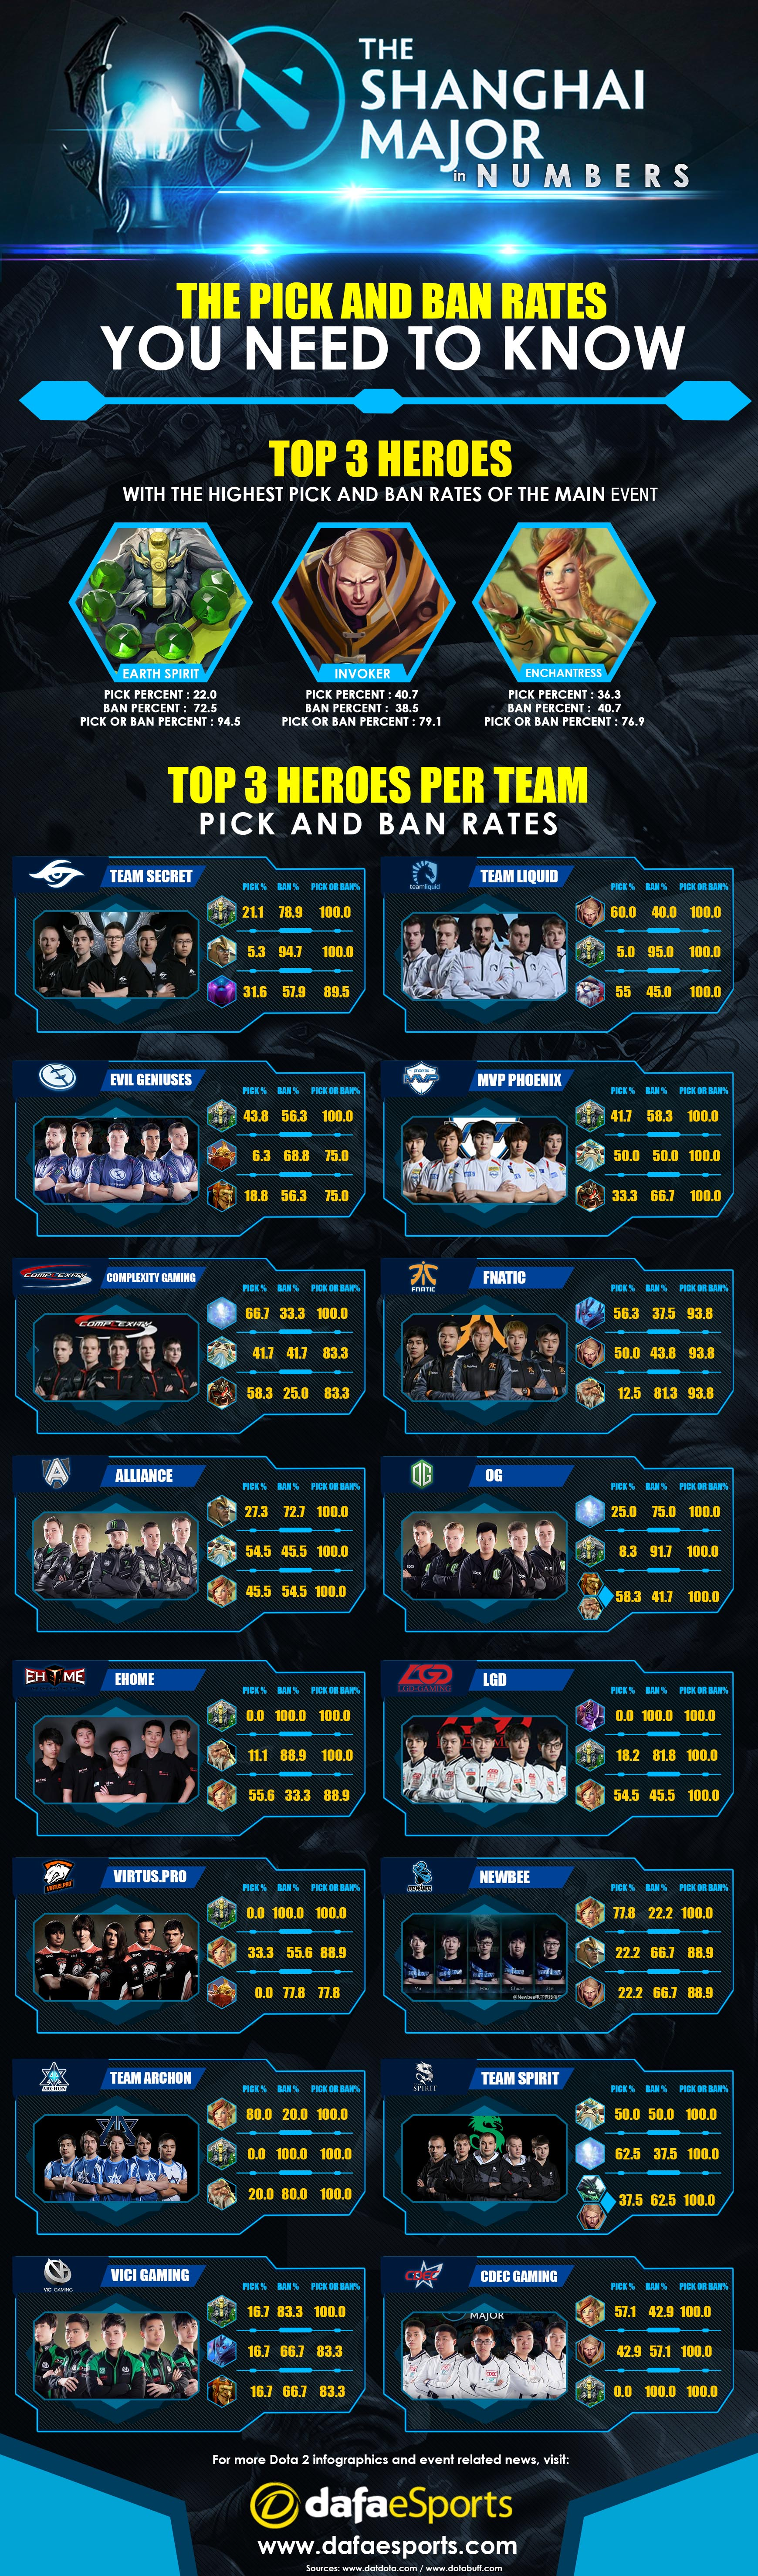 shanghai major pick and ban rates infographic dafa esports shanghai major pick and ban rate infographic